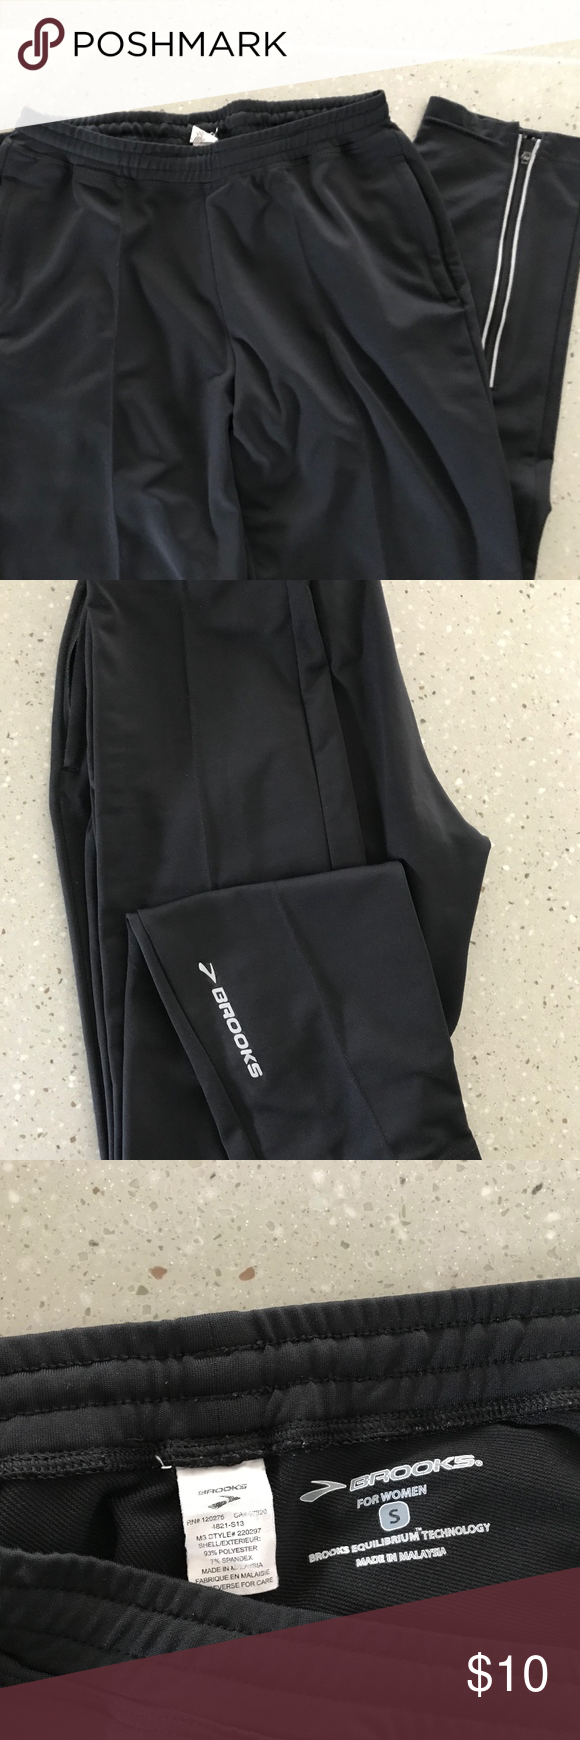 Brooks Athletic Pant Athletic Pants Pants Clothes Design